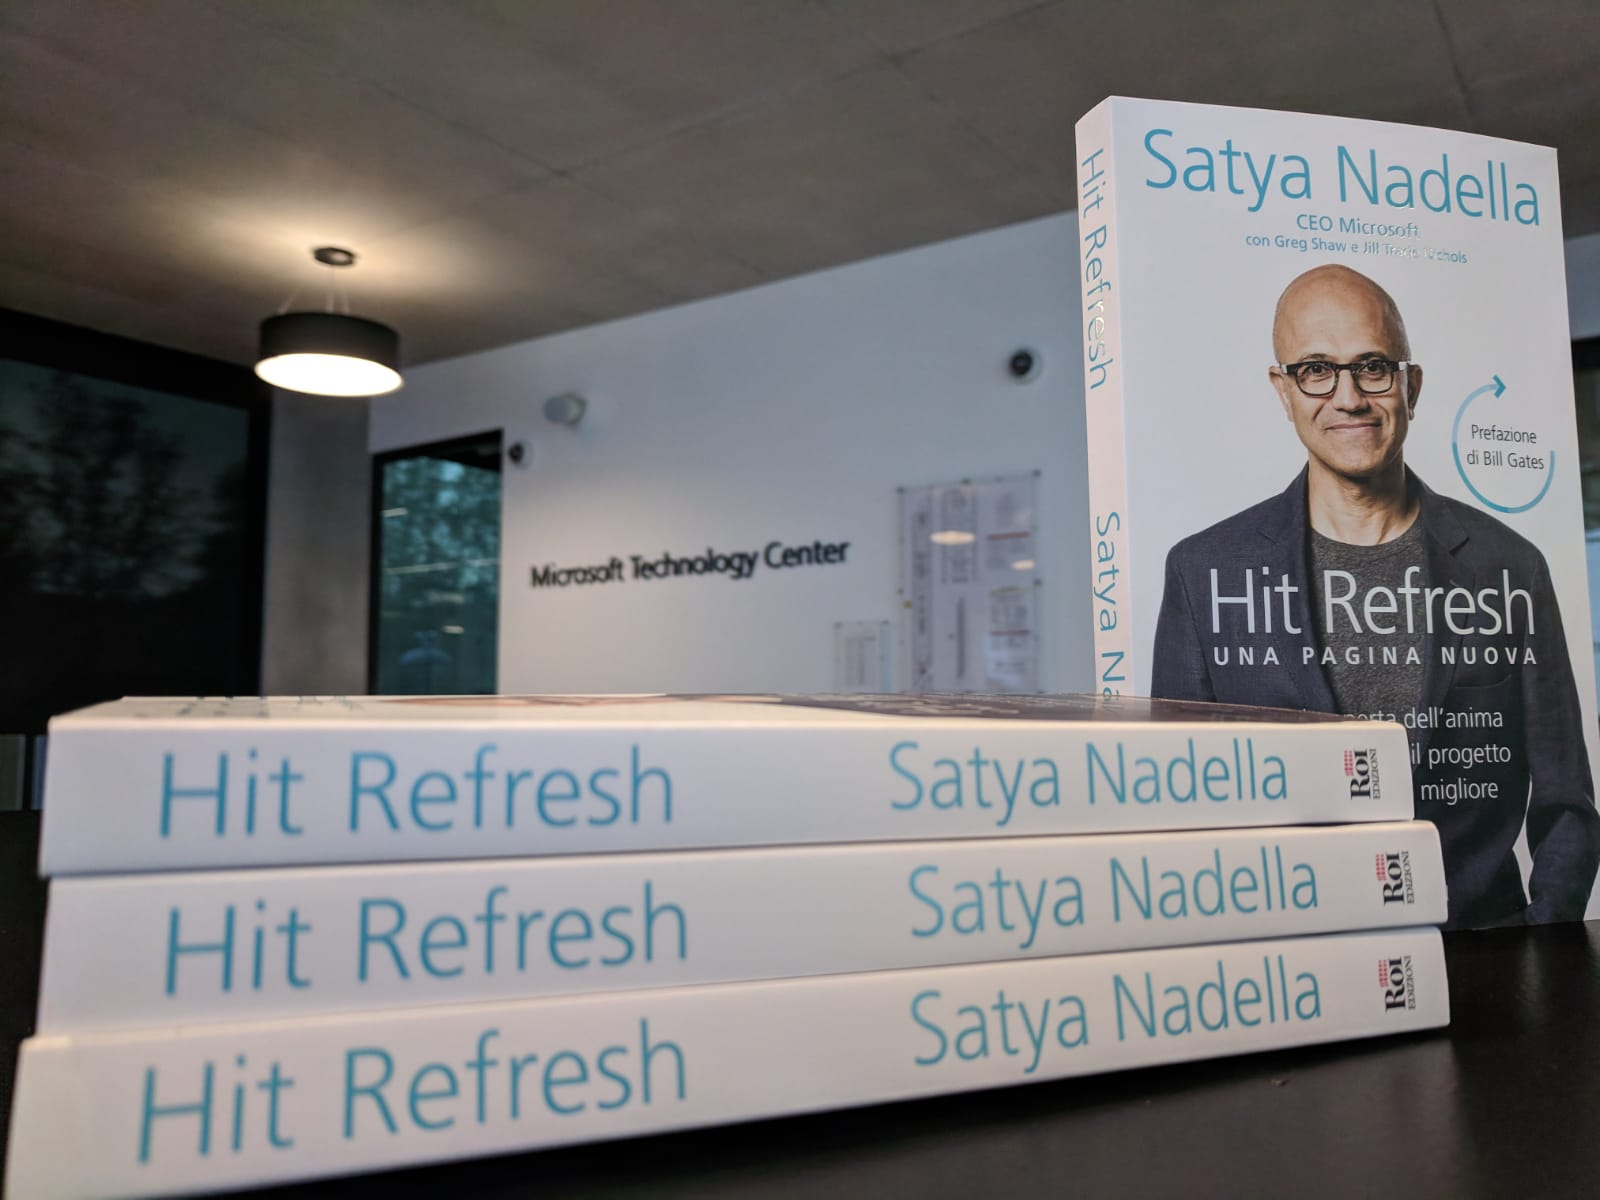 libro Hit refresh di Satya Nadella CEO Microsoft